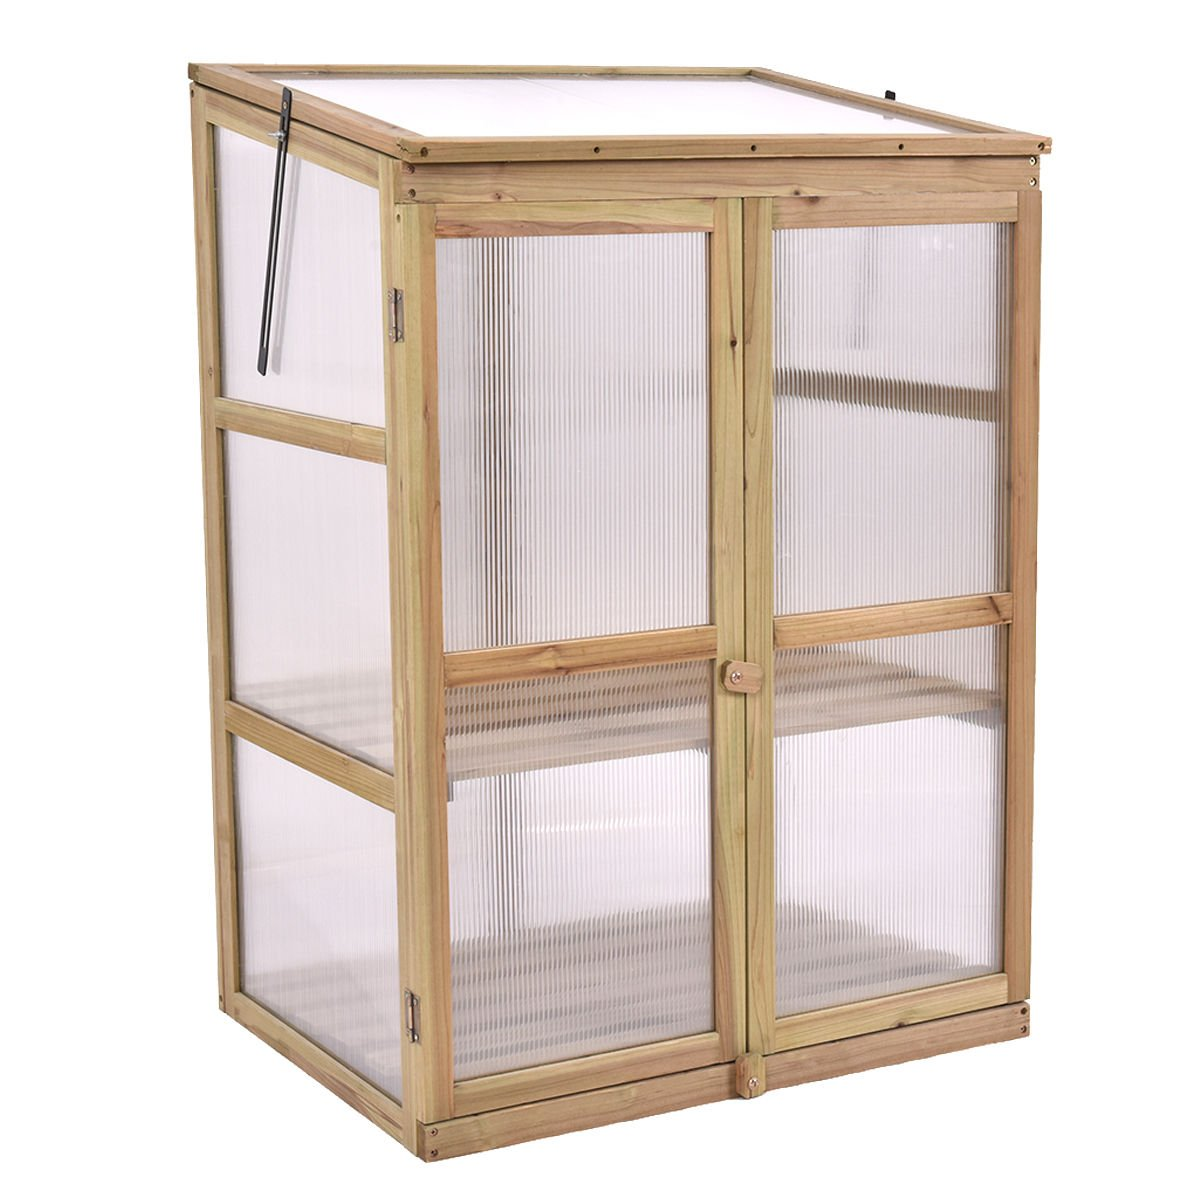 Maximumstore Garden Portable Wooden GreenHouse Cold Frame Raised Plants Shelves Protection